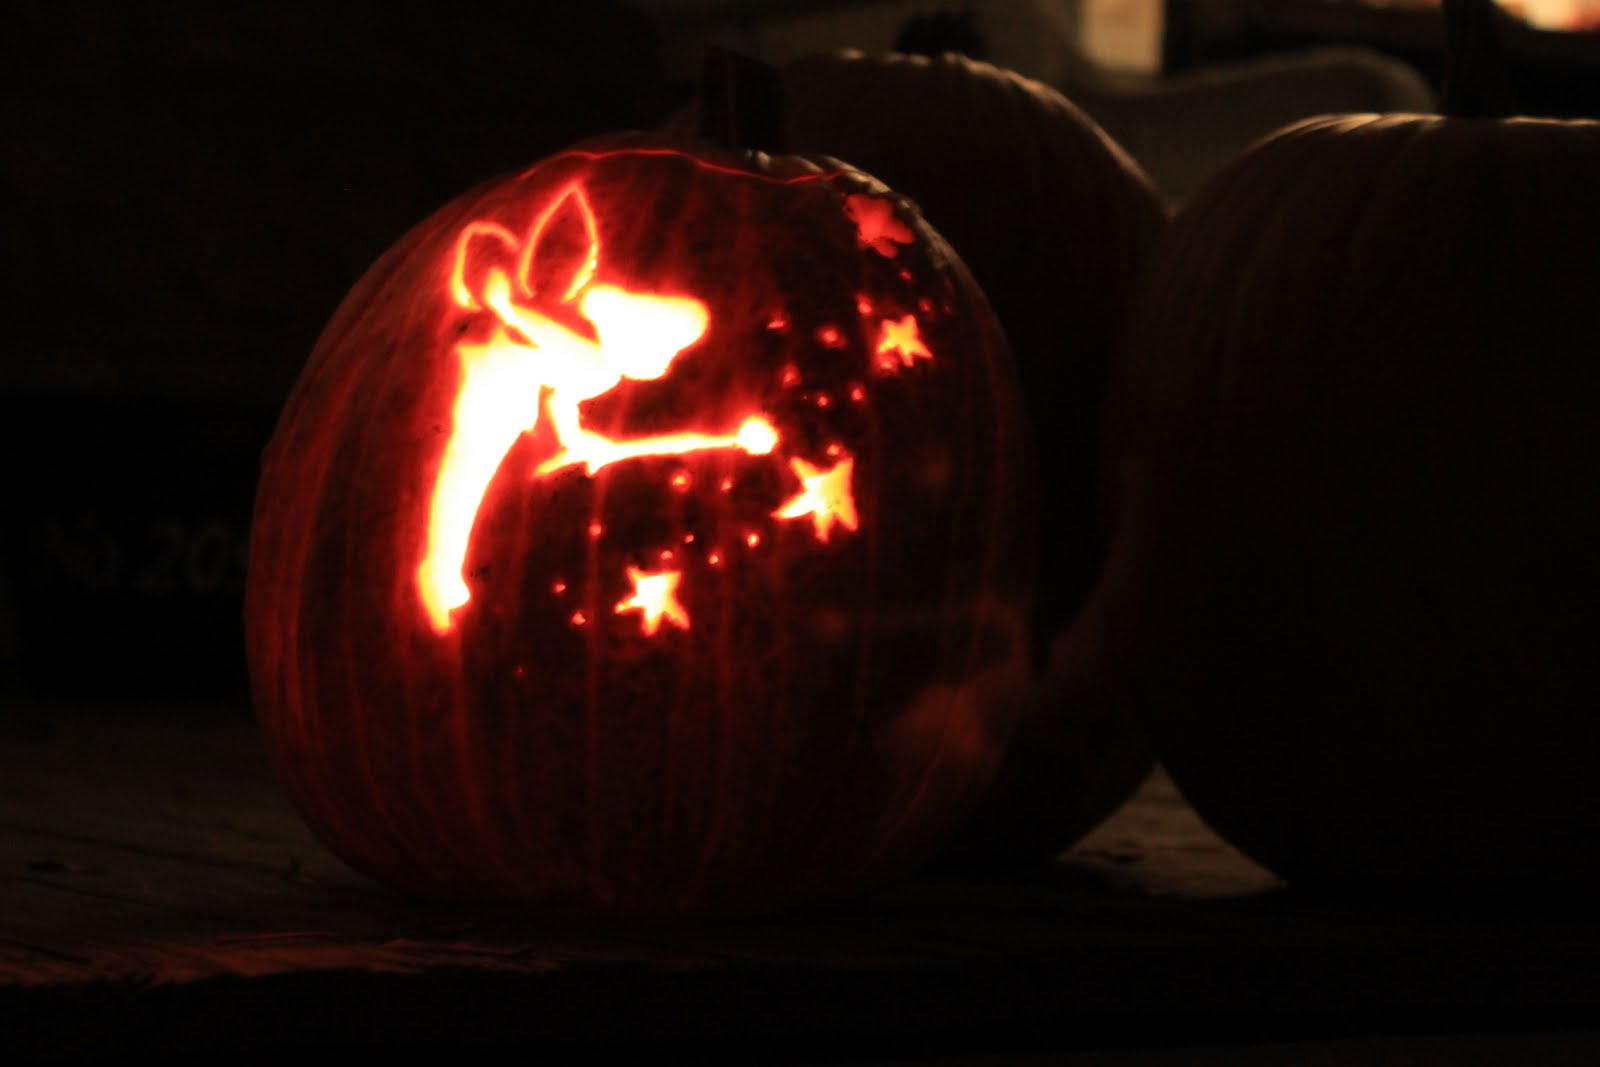 While wearing heels october 2011 for How to carve tinkerbell in a pumpkin